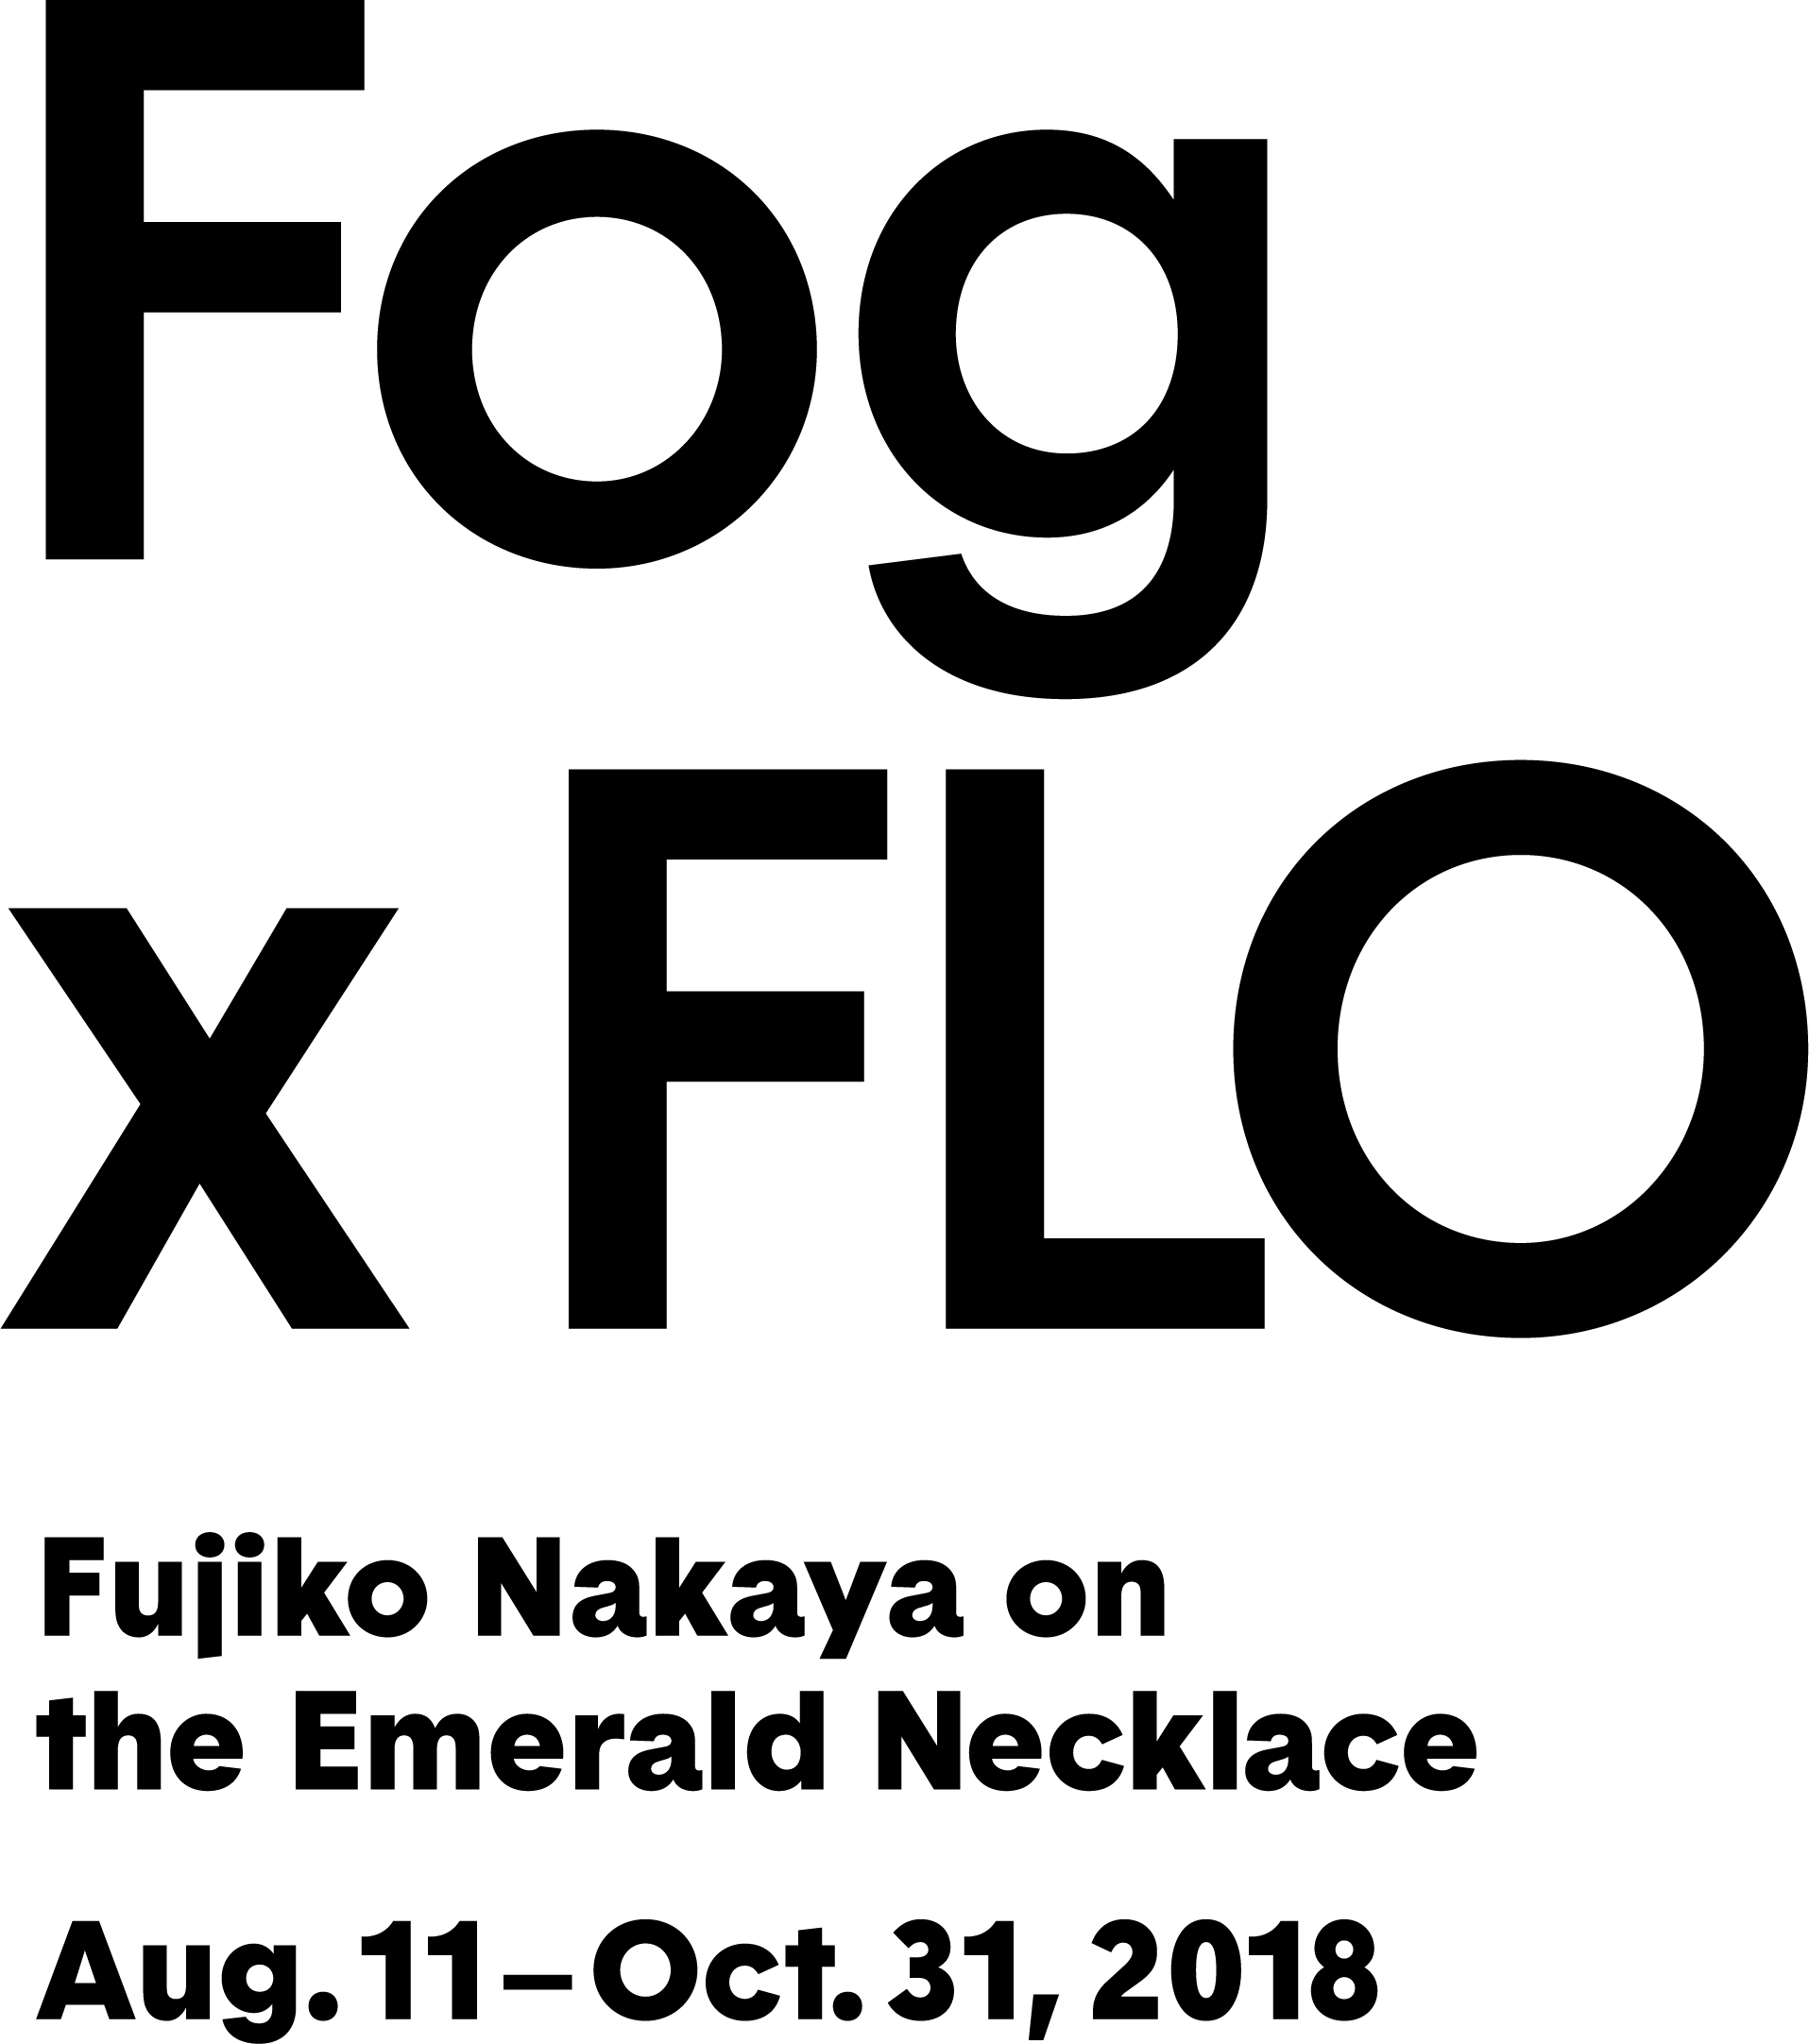 "In  Fog x FLO , artist Fujiko Nakaya responds to the landmarked waterways and landscapes designed by  Frederick Law Olmsted (FLO)  .  Nakaya's ""climate responsive,"" shape-shifting, pure water forms invite visitors to immerse themselves in the art, experience nature anew, and appreciate the vital role of the Emerald Necklace in Boston's history, present, and future. Organized by the Emerald Necklace Conservancy with curator Jen Mergel, This public art presentation is on view every day and several times an hour from 8am to 8pm, from August 11 through October 31. To learn more about Fog x FLO, visit   www.emeraldnecklace.org ."